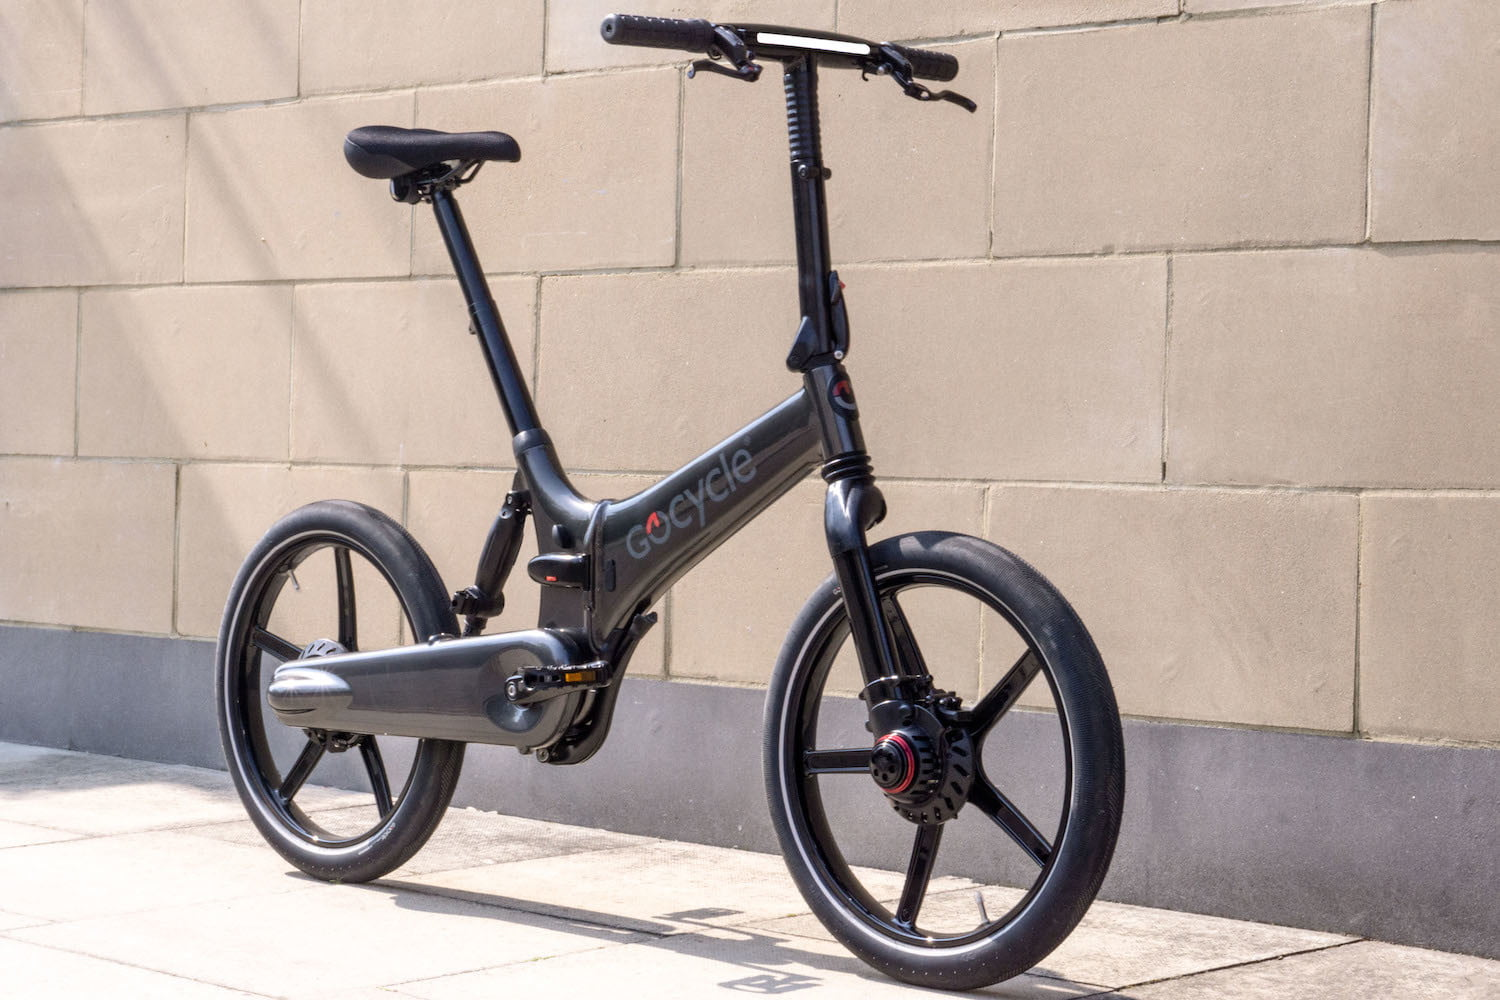 Gocycle's new GXi electric bike can fold away in a mere 10 seconds